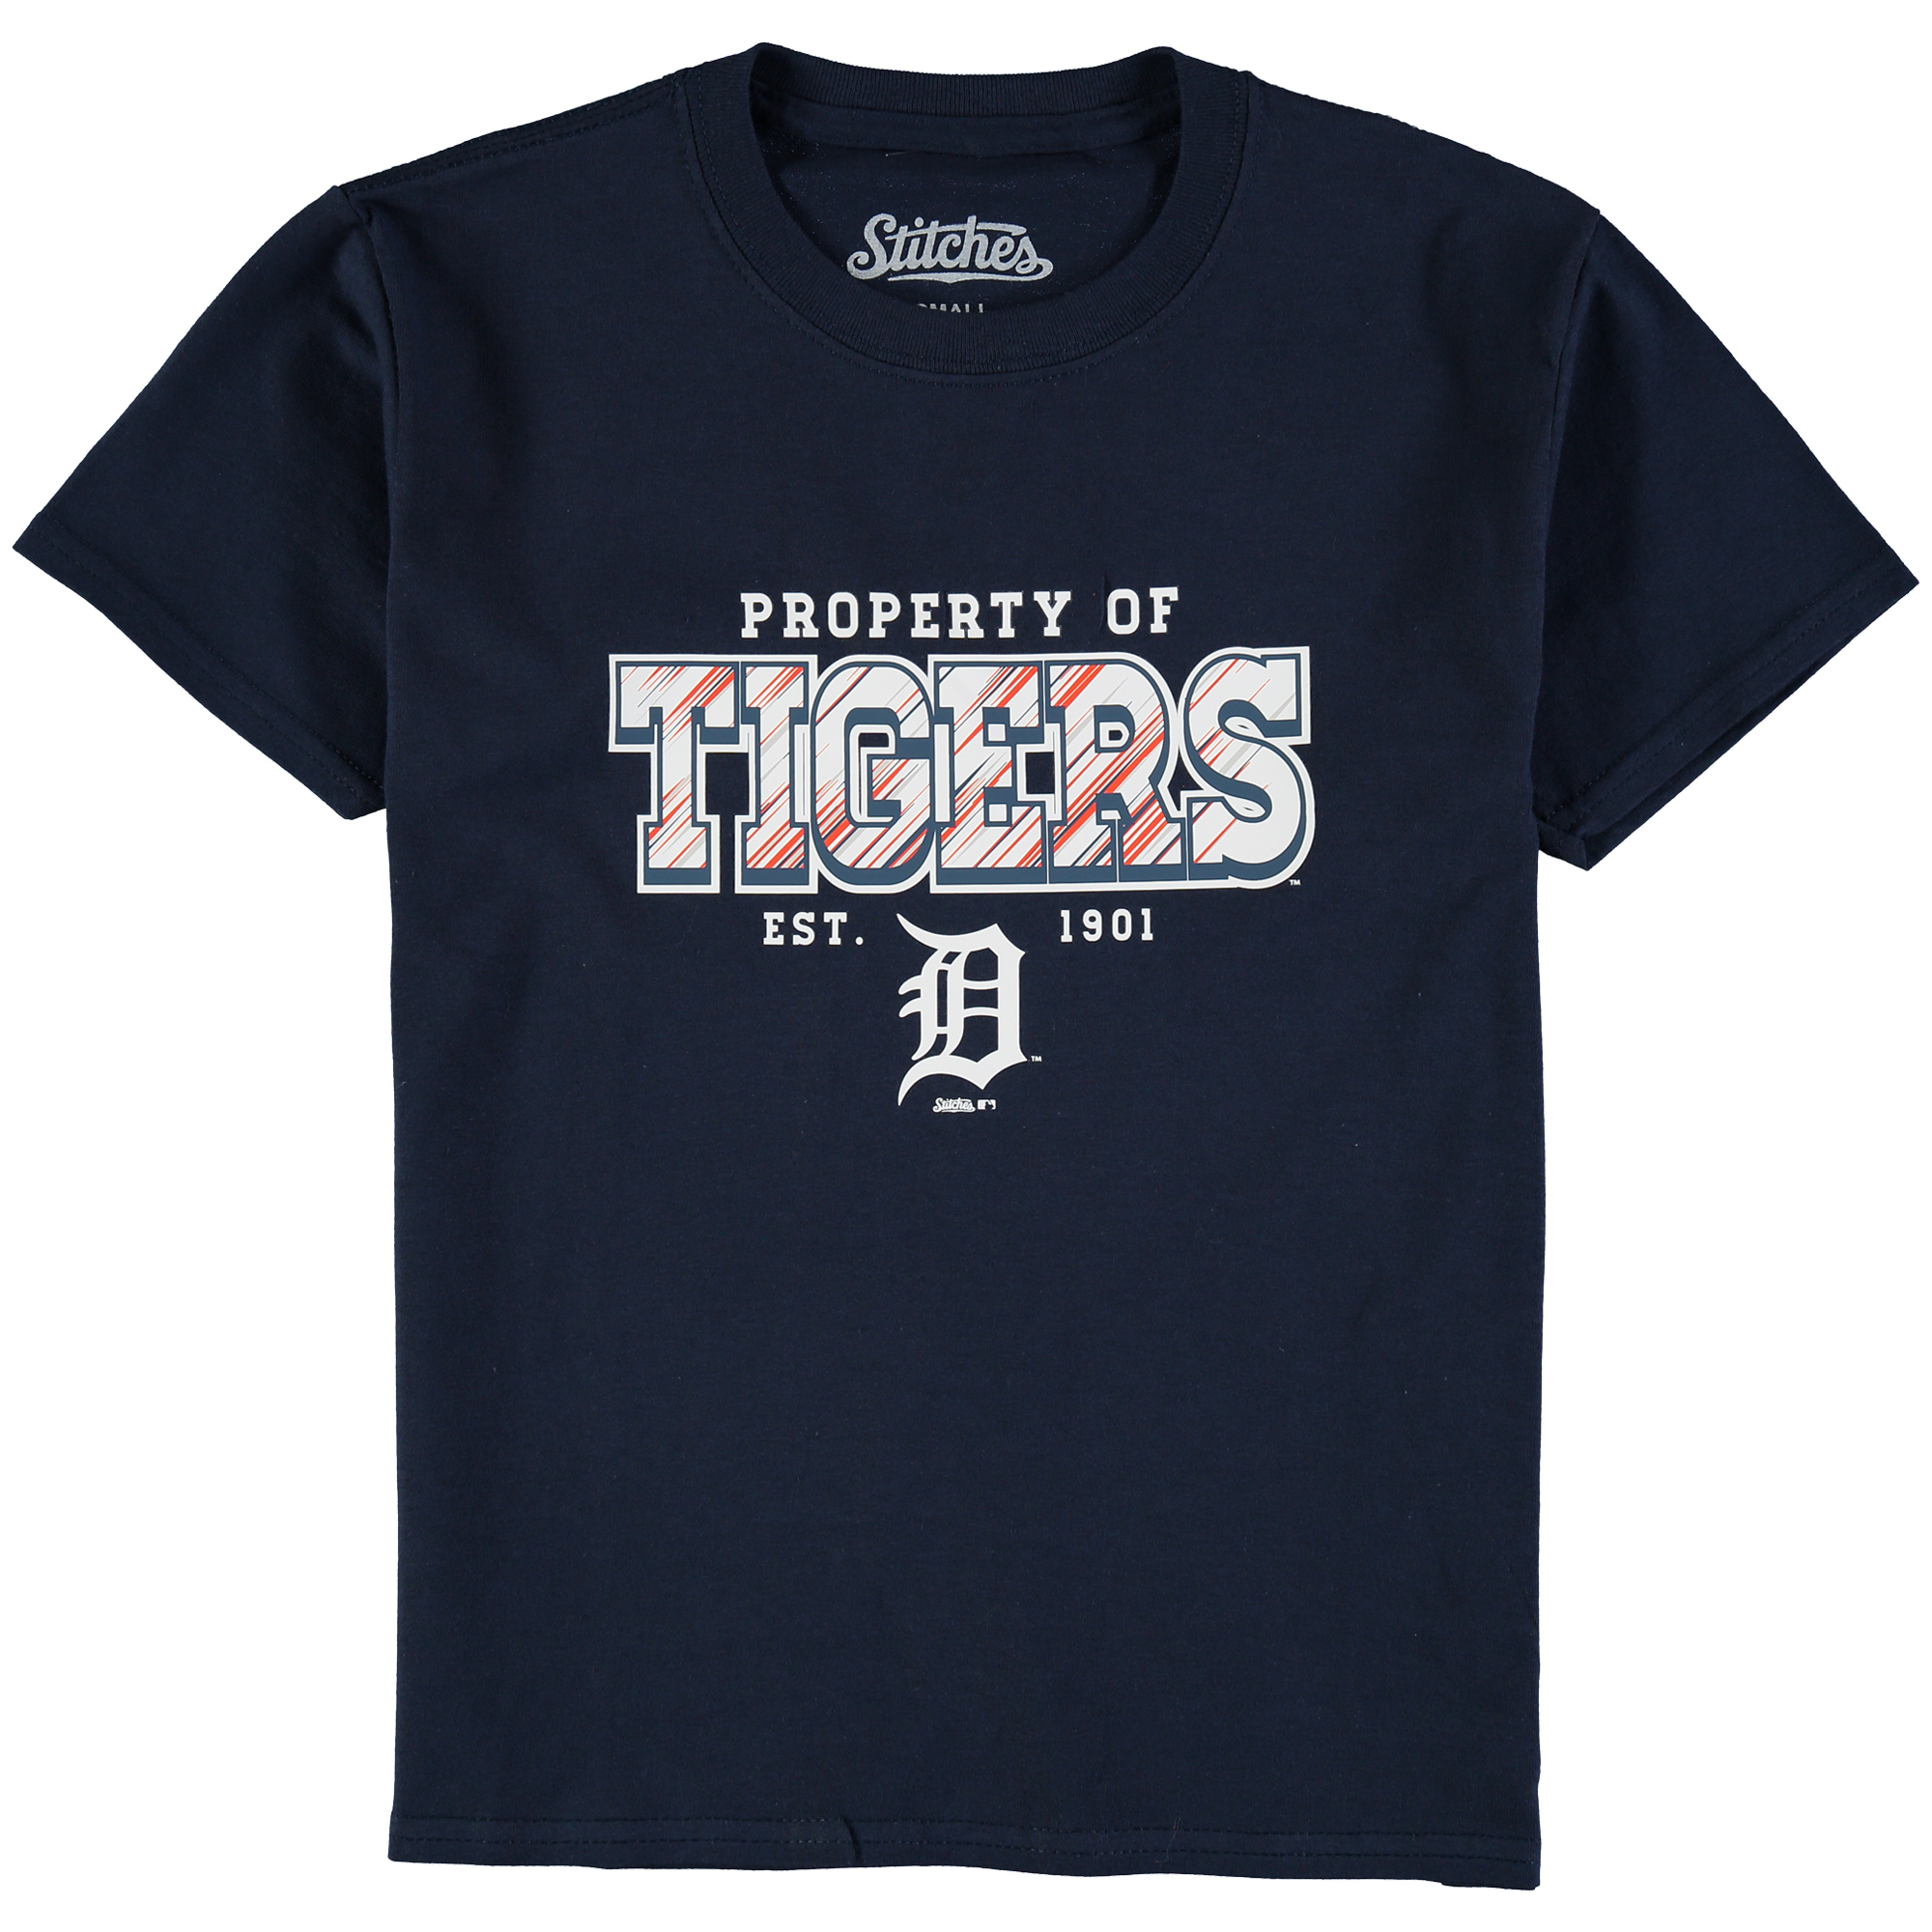 Detroit Tigers Stitches Youth Property Of Team T-Shirt - Navy